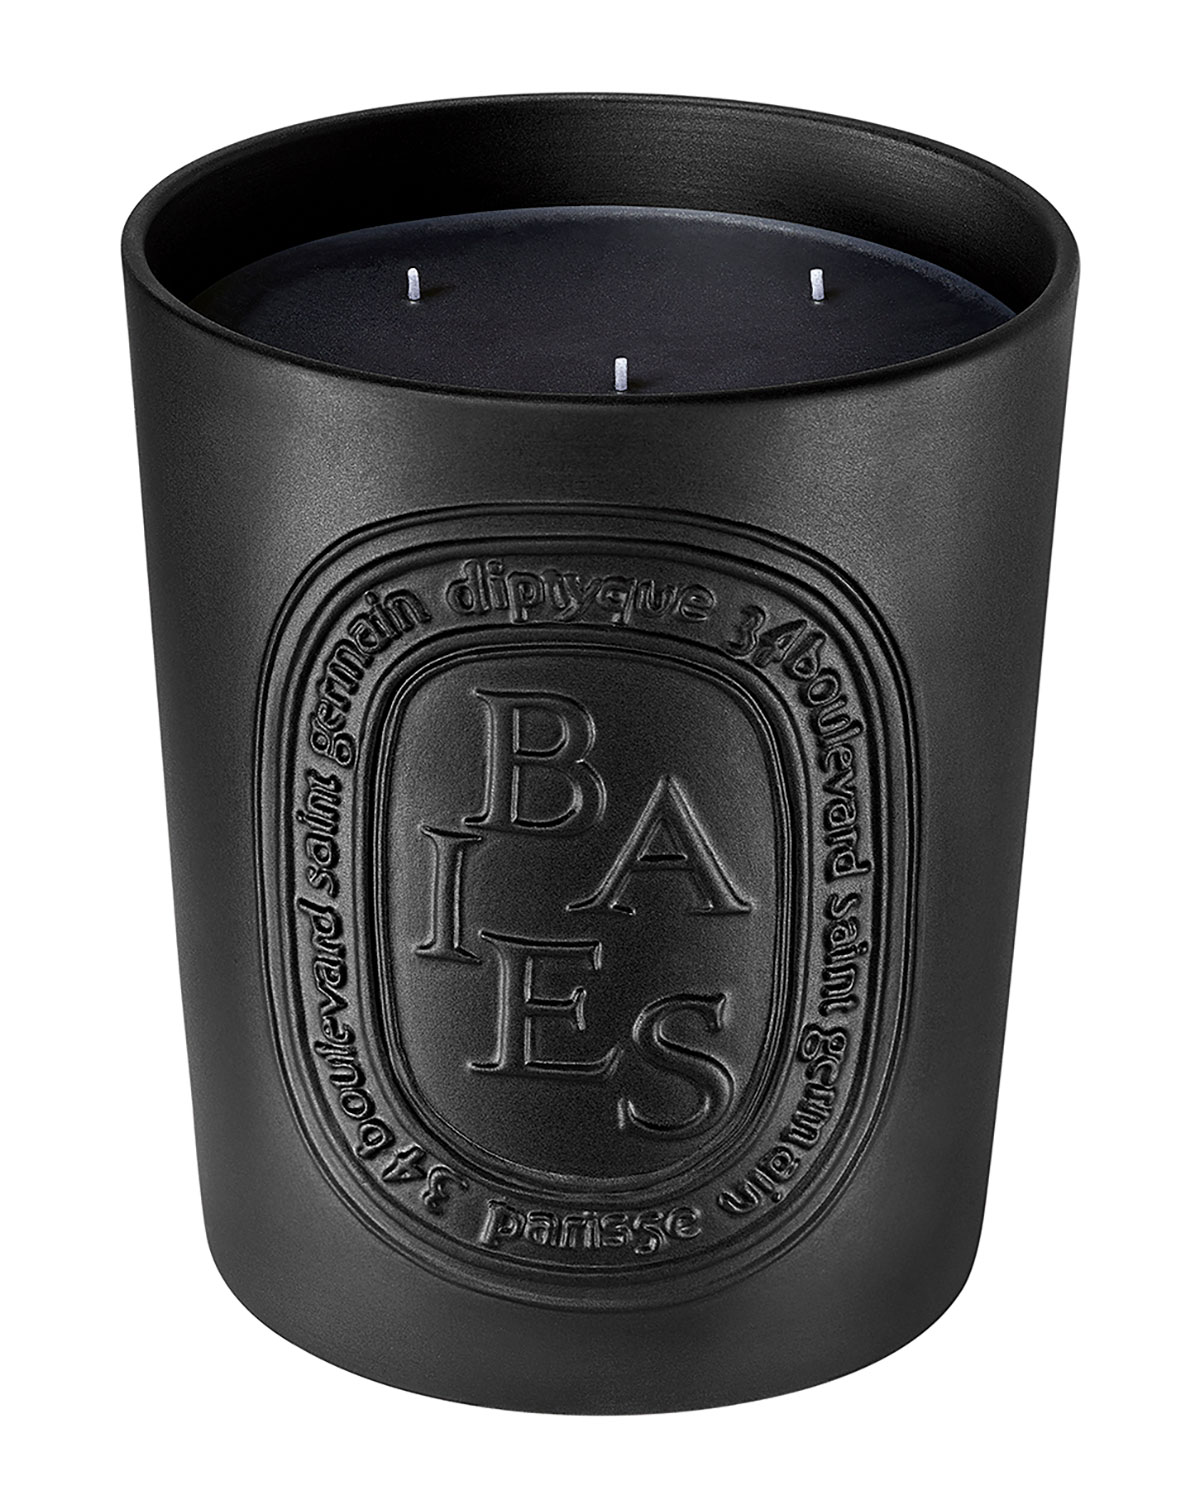 Diptyque 21.1 oz. Baies 3-Wick Candle